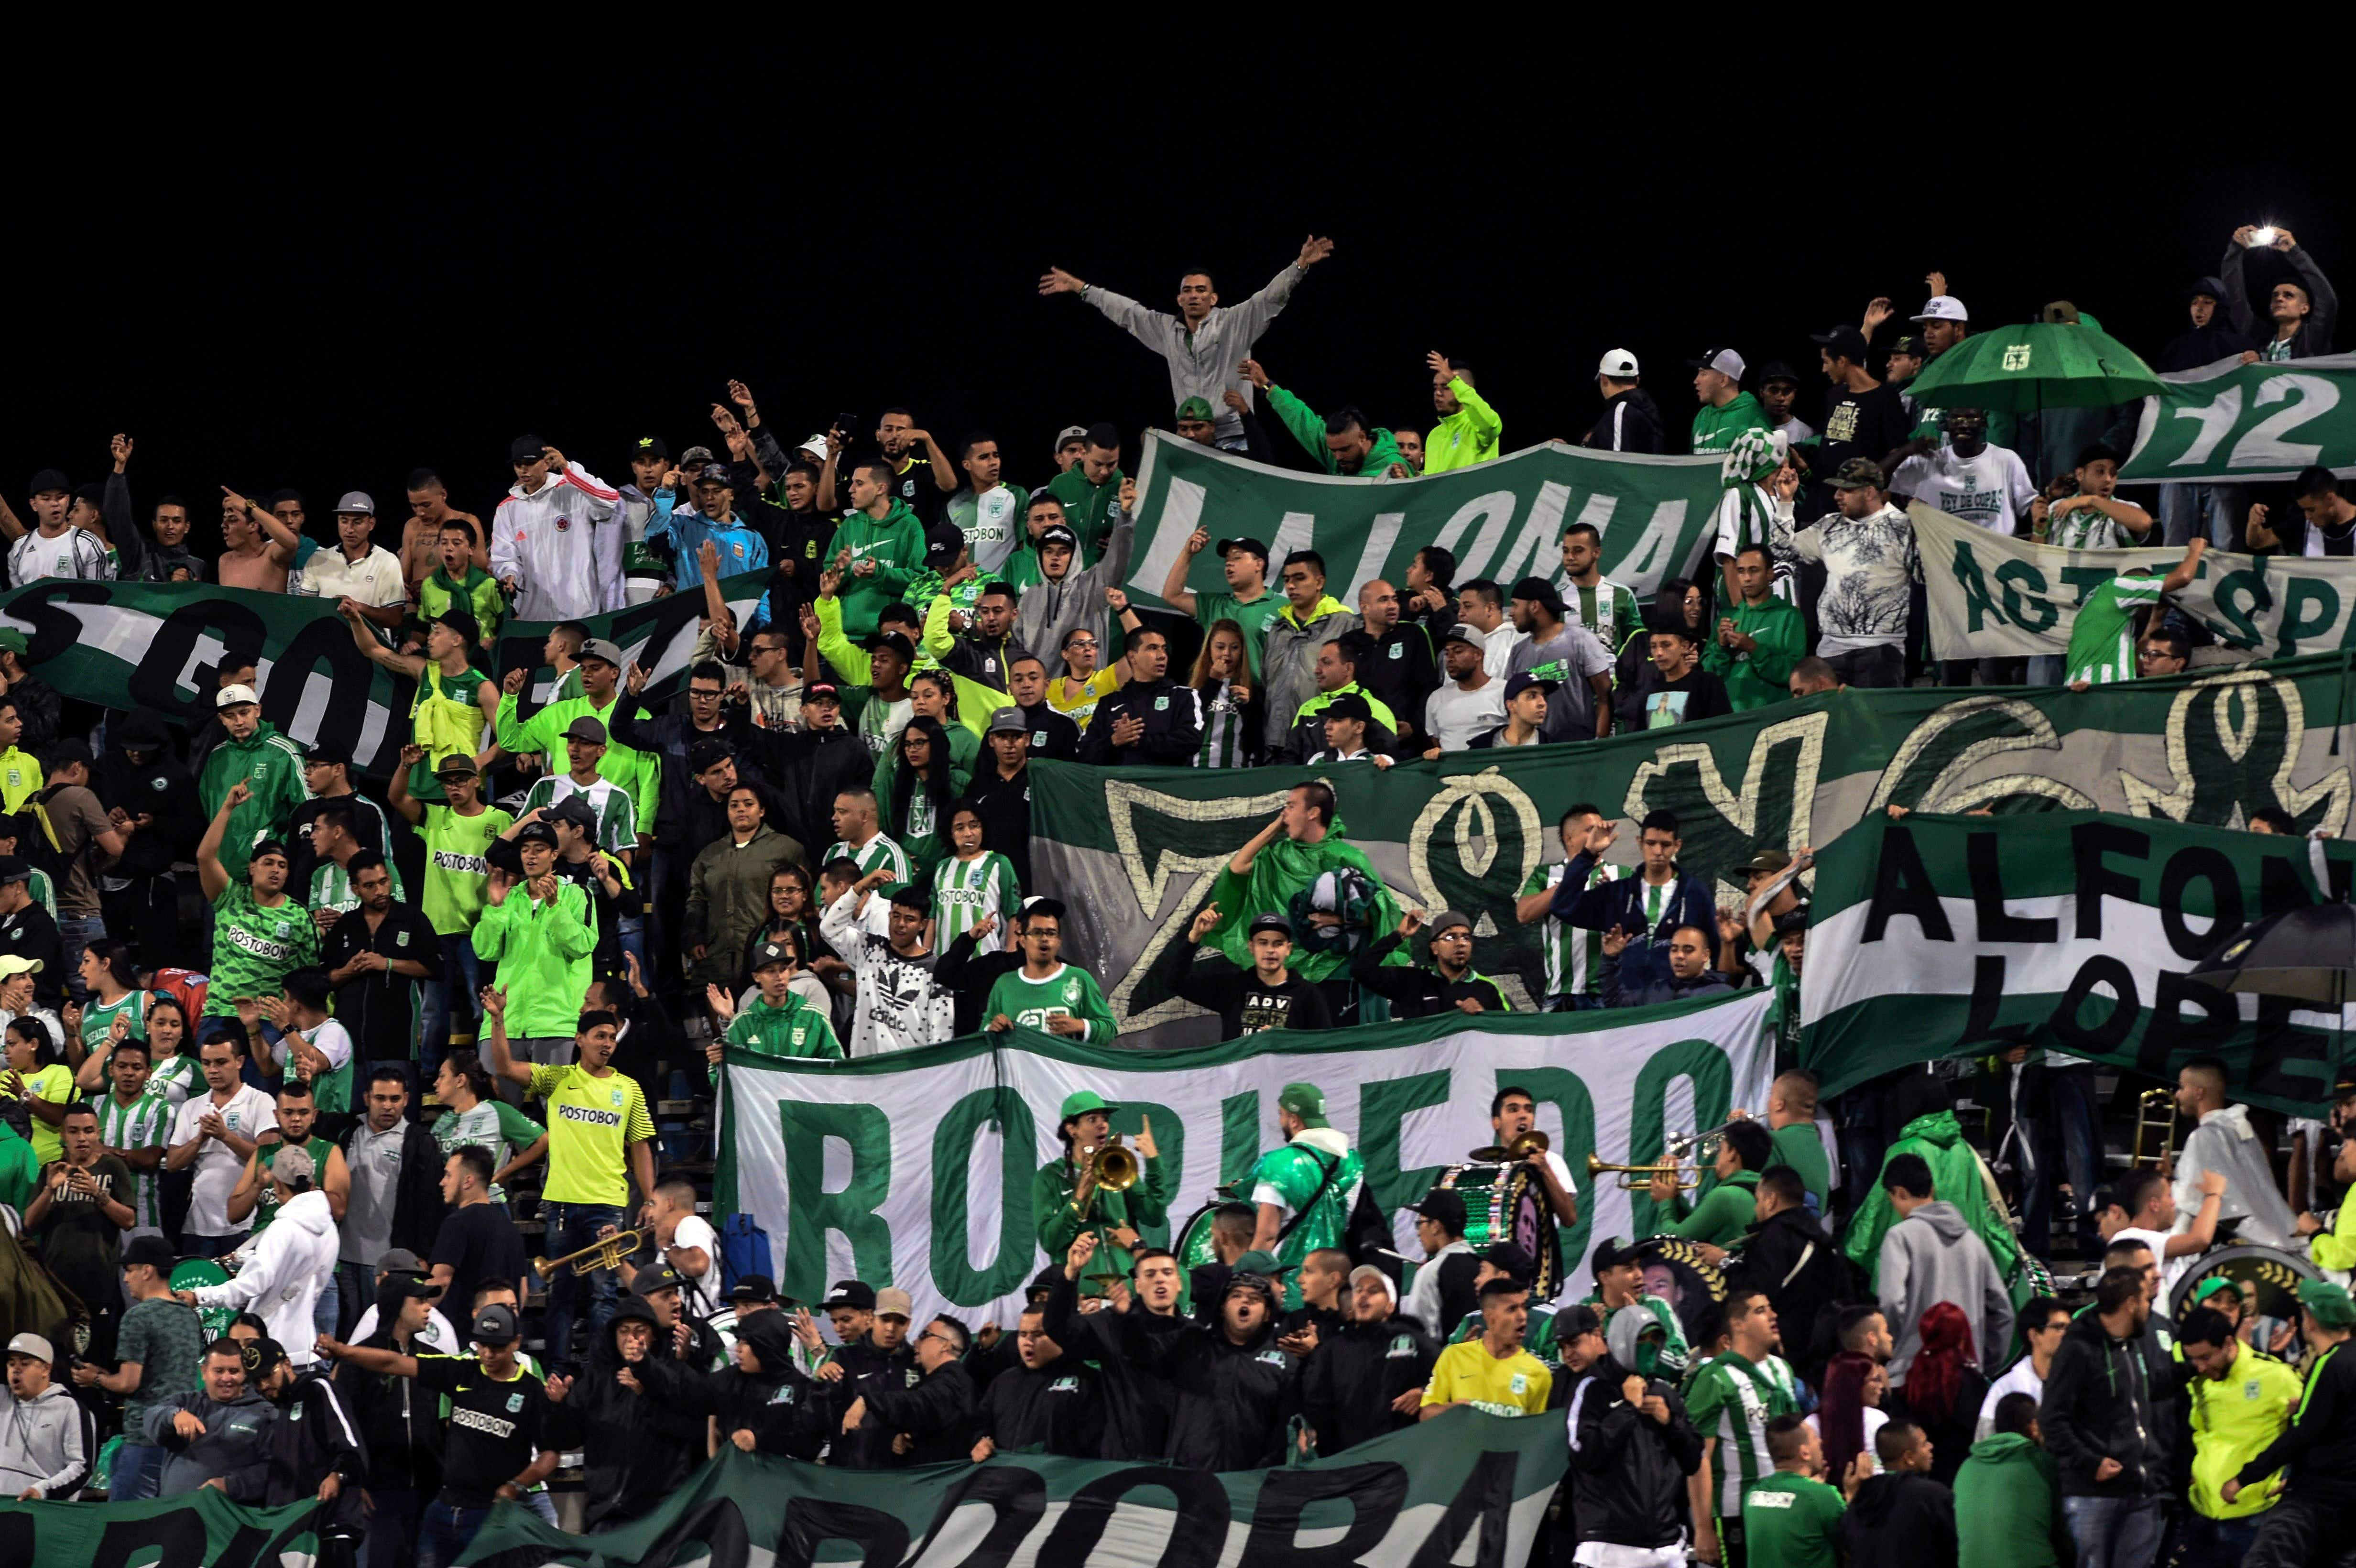 Nacional soccer fans are among the sports most passionate in Colombia © Joaquin Sarmiento / Getty Images